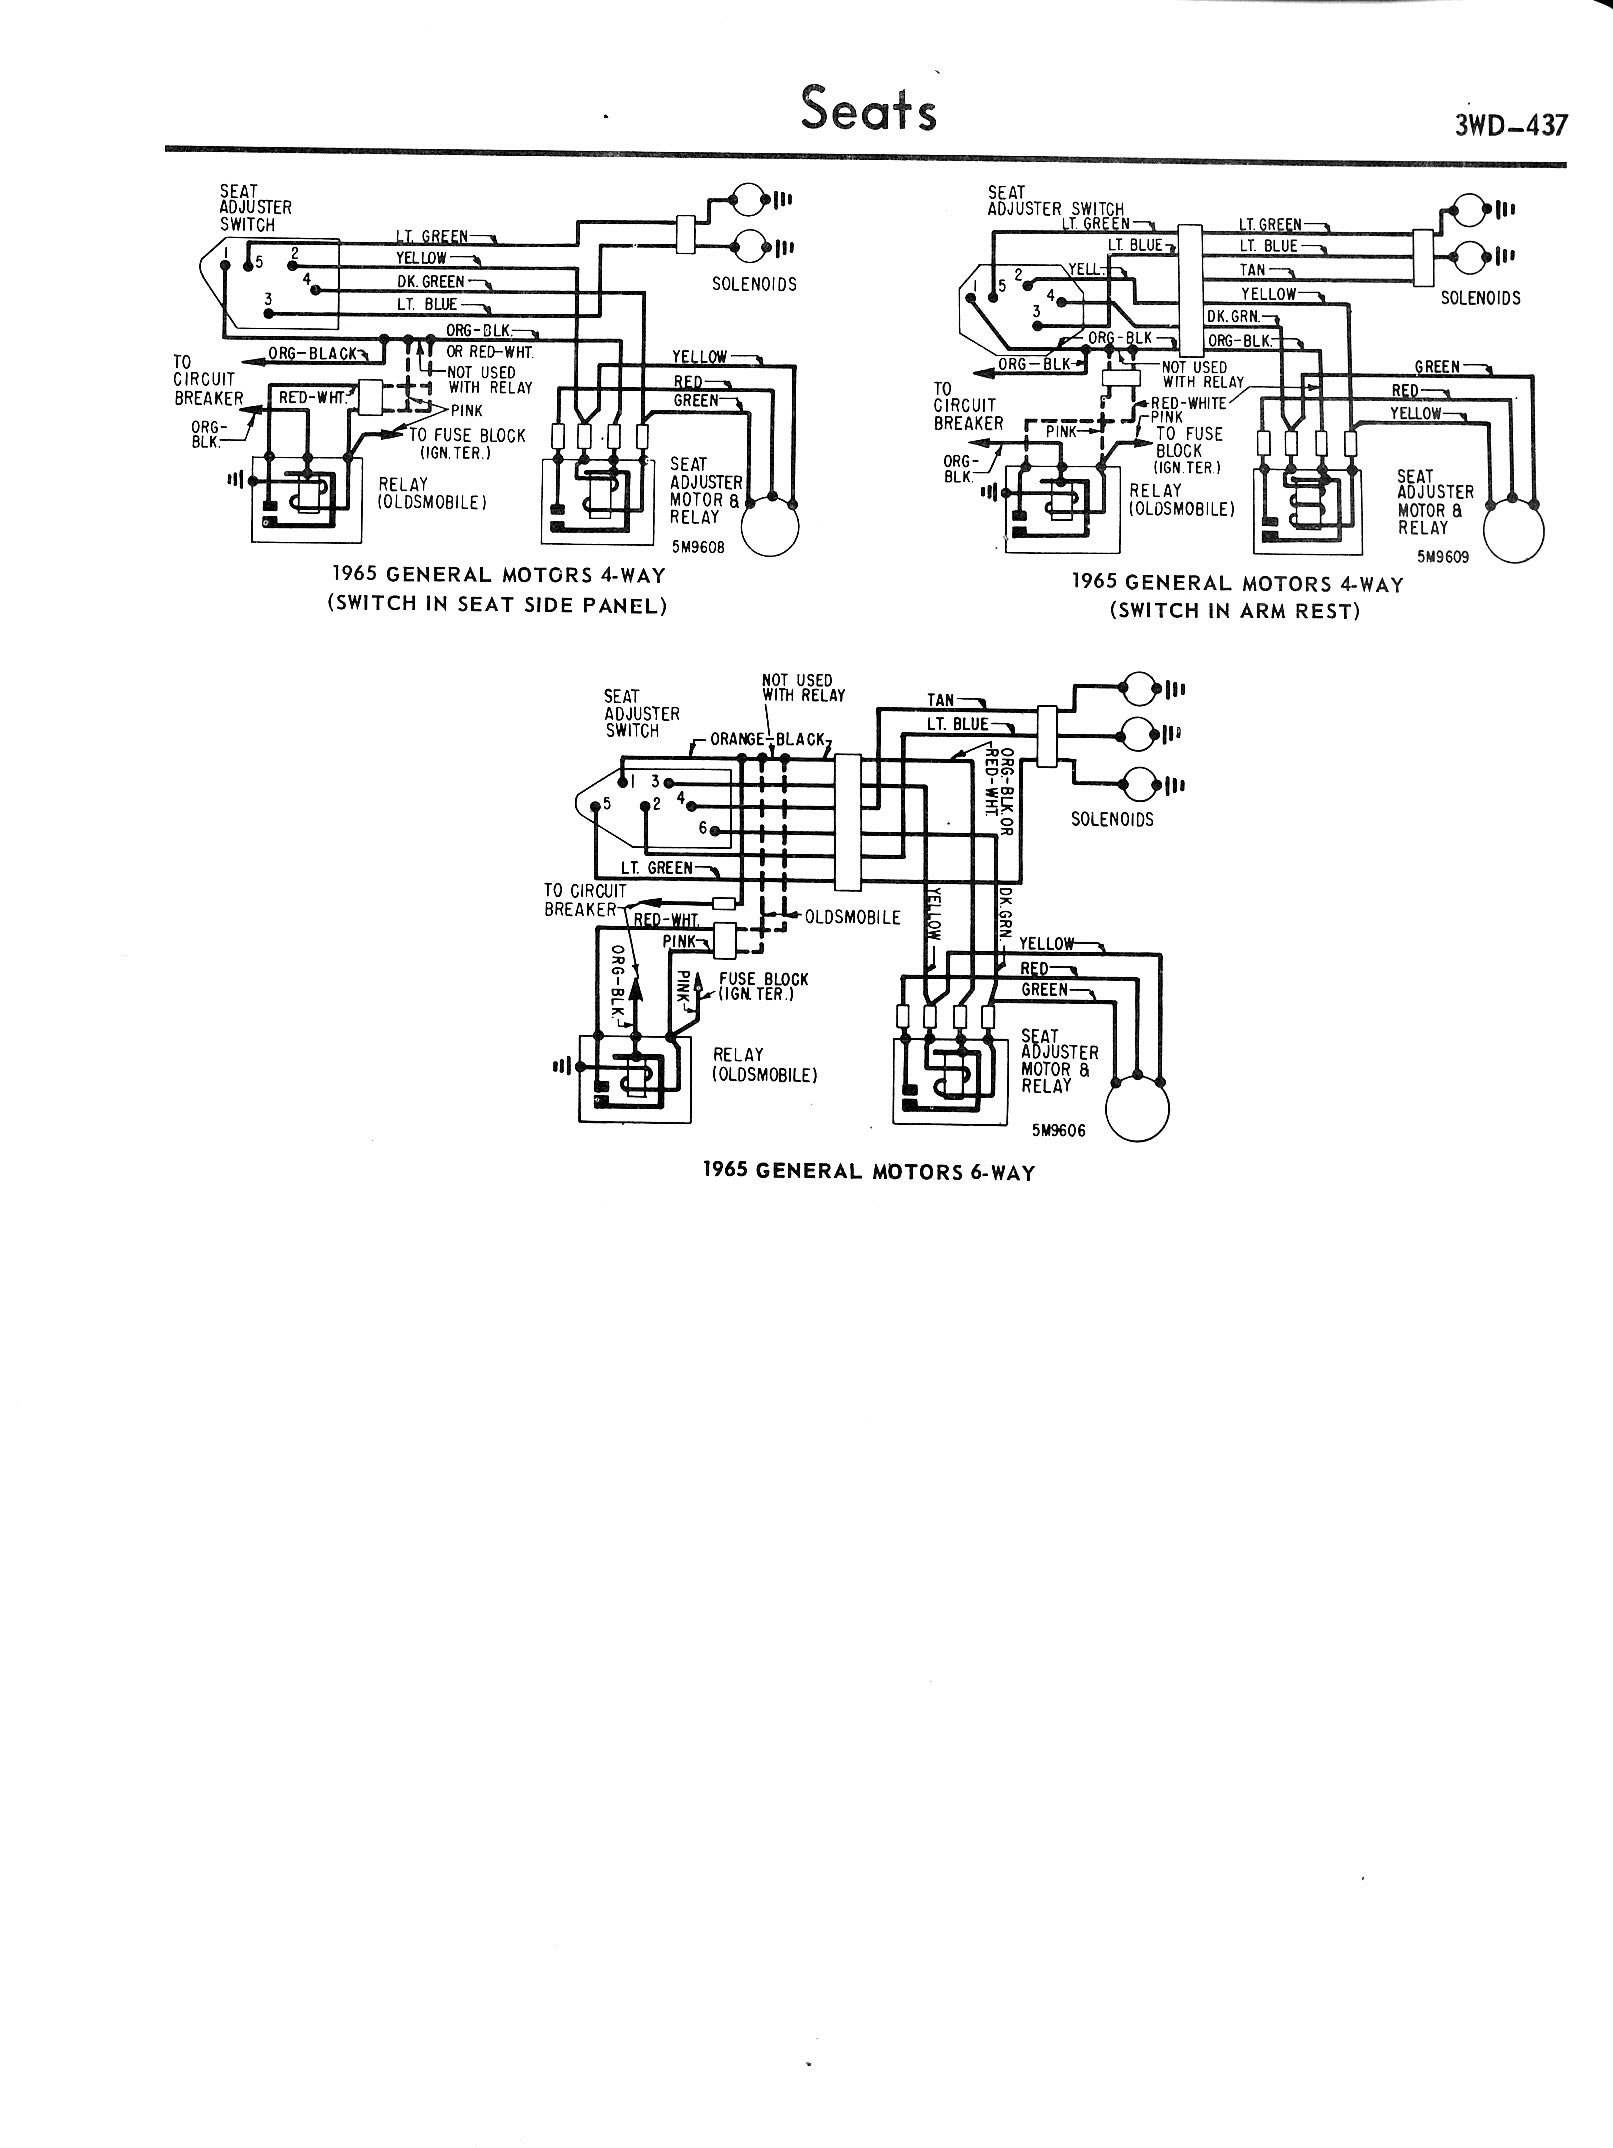 hight resolution of 6 way switch wiring diagram chevrolet